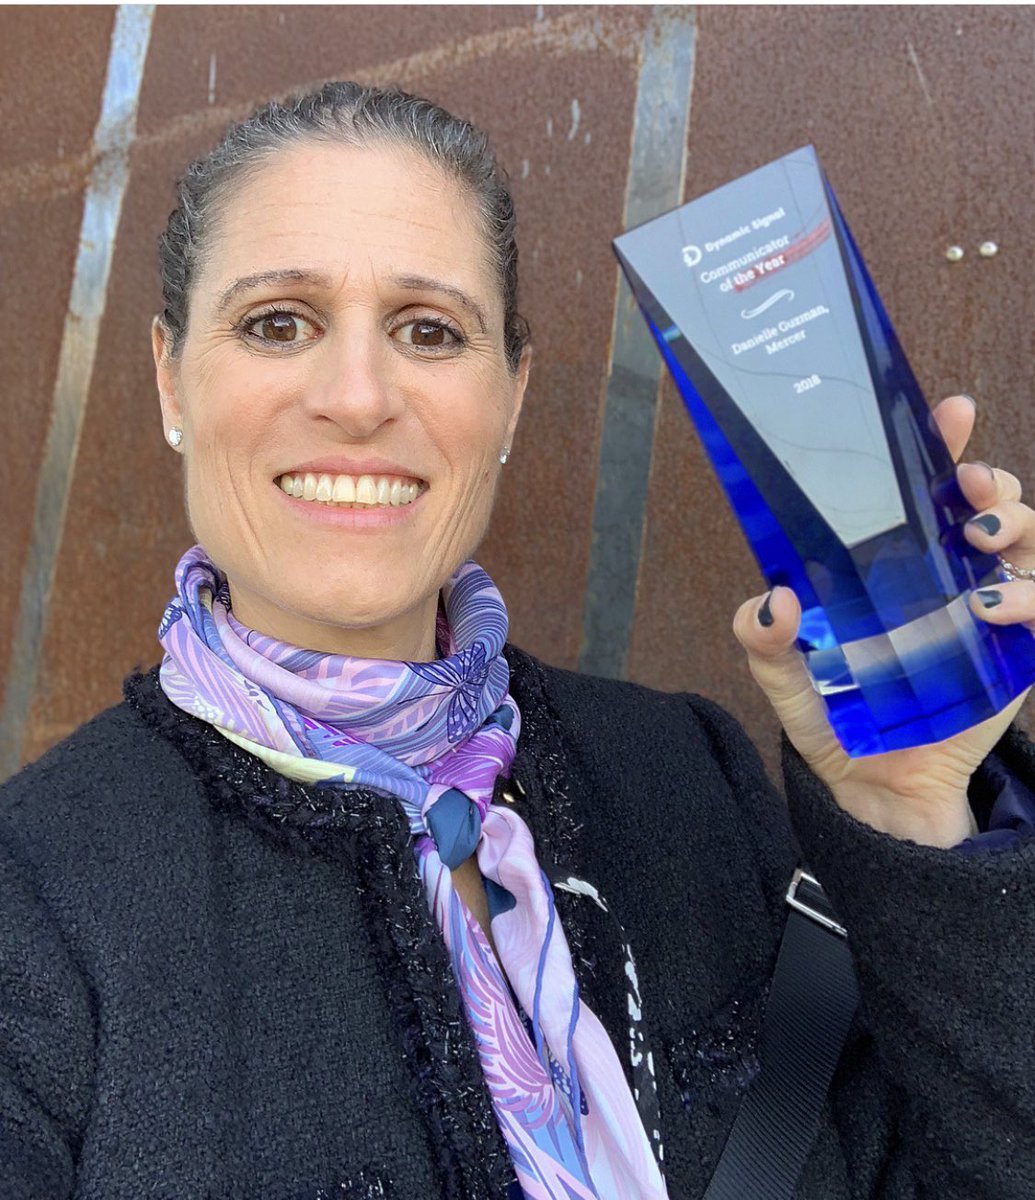 What an honor to be awarded 'Communicator of the Year' by @Dynamic_Signal today. My team, and our amazing global community of @mercer advocates, this is for you. You are all our storytellers.  #womeninbusiness #socialmedia #EmployeeAdvocacy #DySiSummit #futureofwork<br>http://pic.twitter.com/KOi4W0XLOA